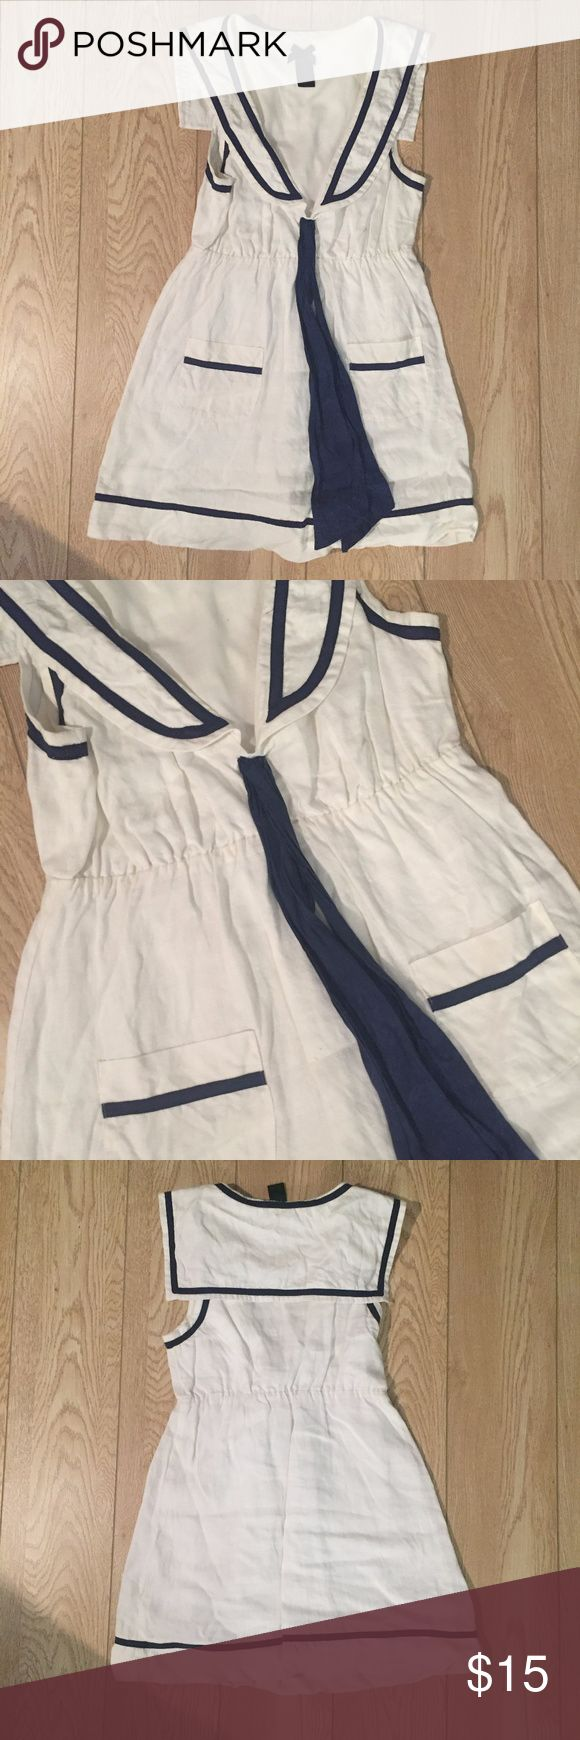 Sailor Style White and Blue Dress OMG, this dress is so great! It's a linen material with great little details like the pockets that make it look like a sailor dress. It's a really cute weekend dress! The blue ties in the front can be tied into a bow. The dress is in good condition, just needs an iron! Forever 21 Dresses